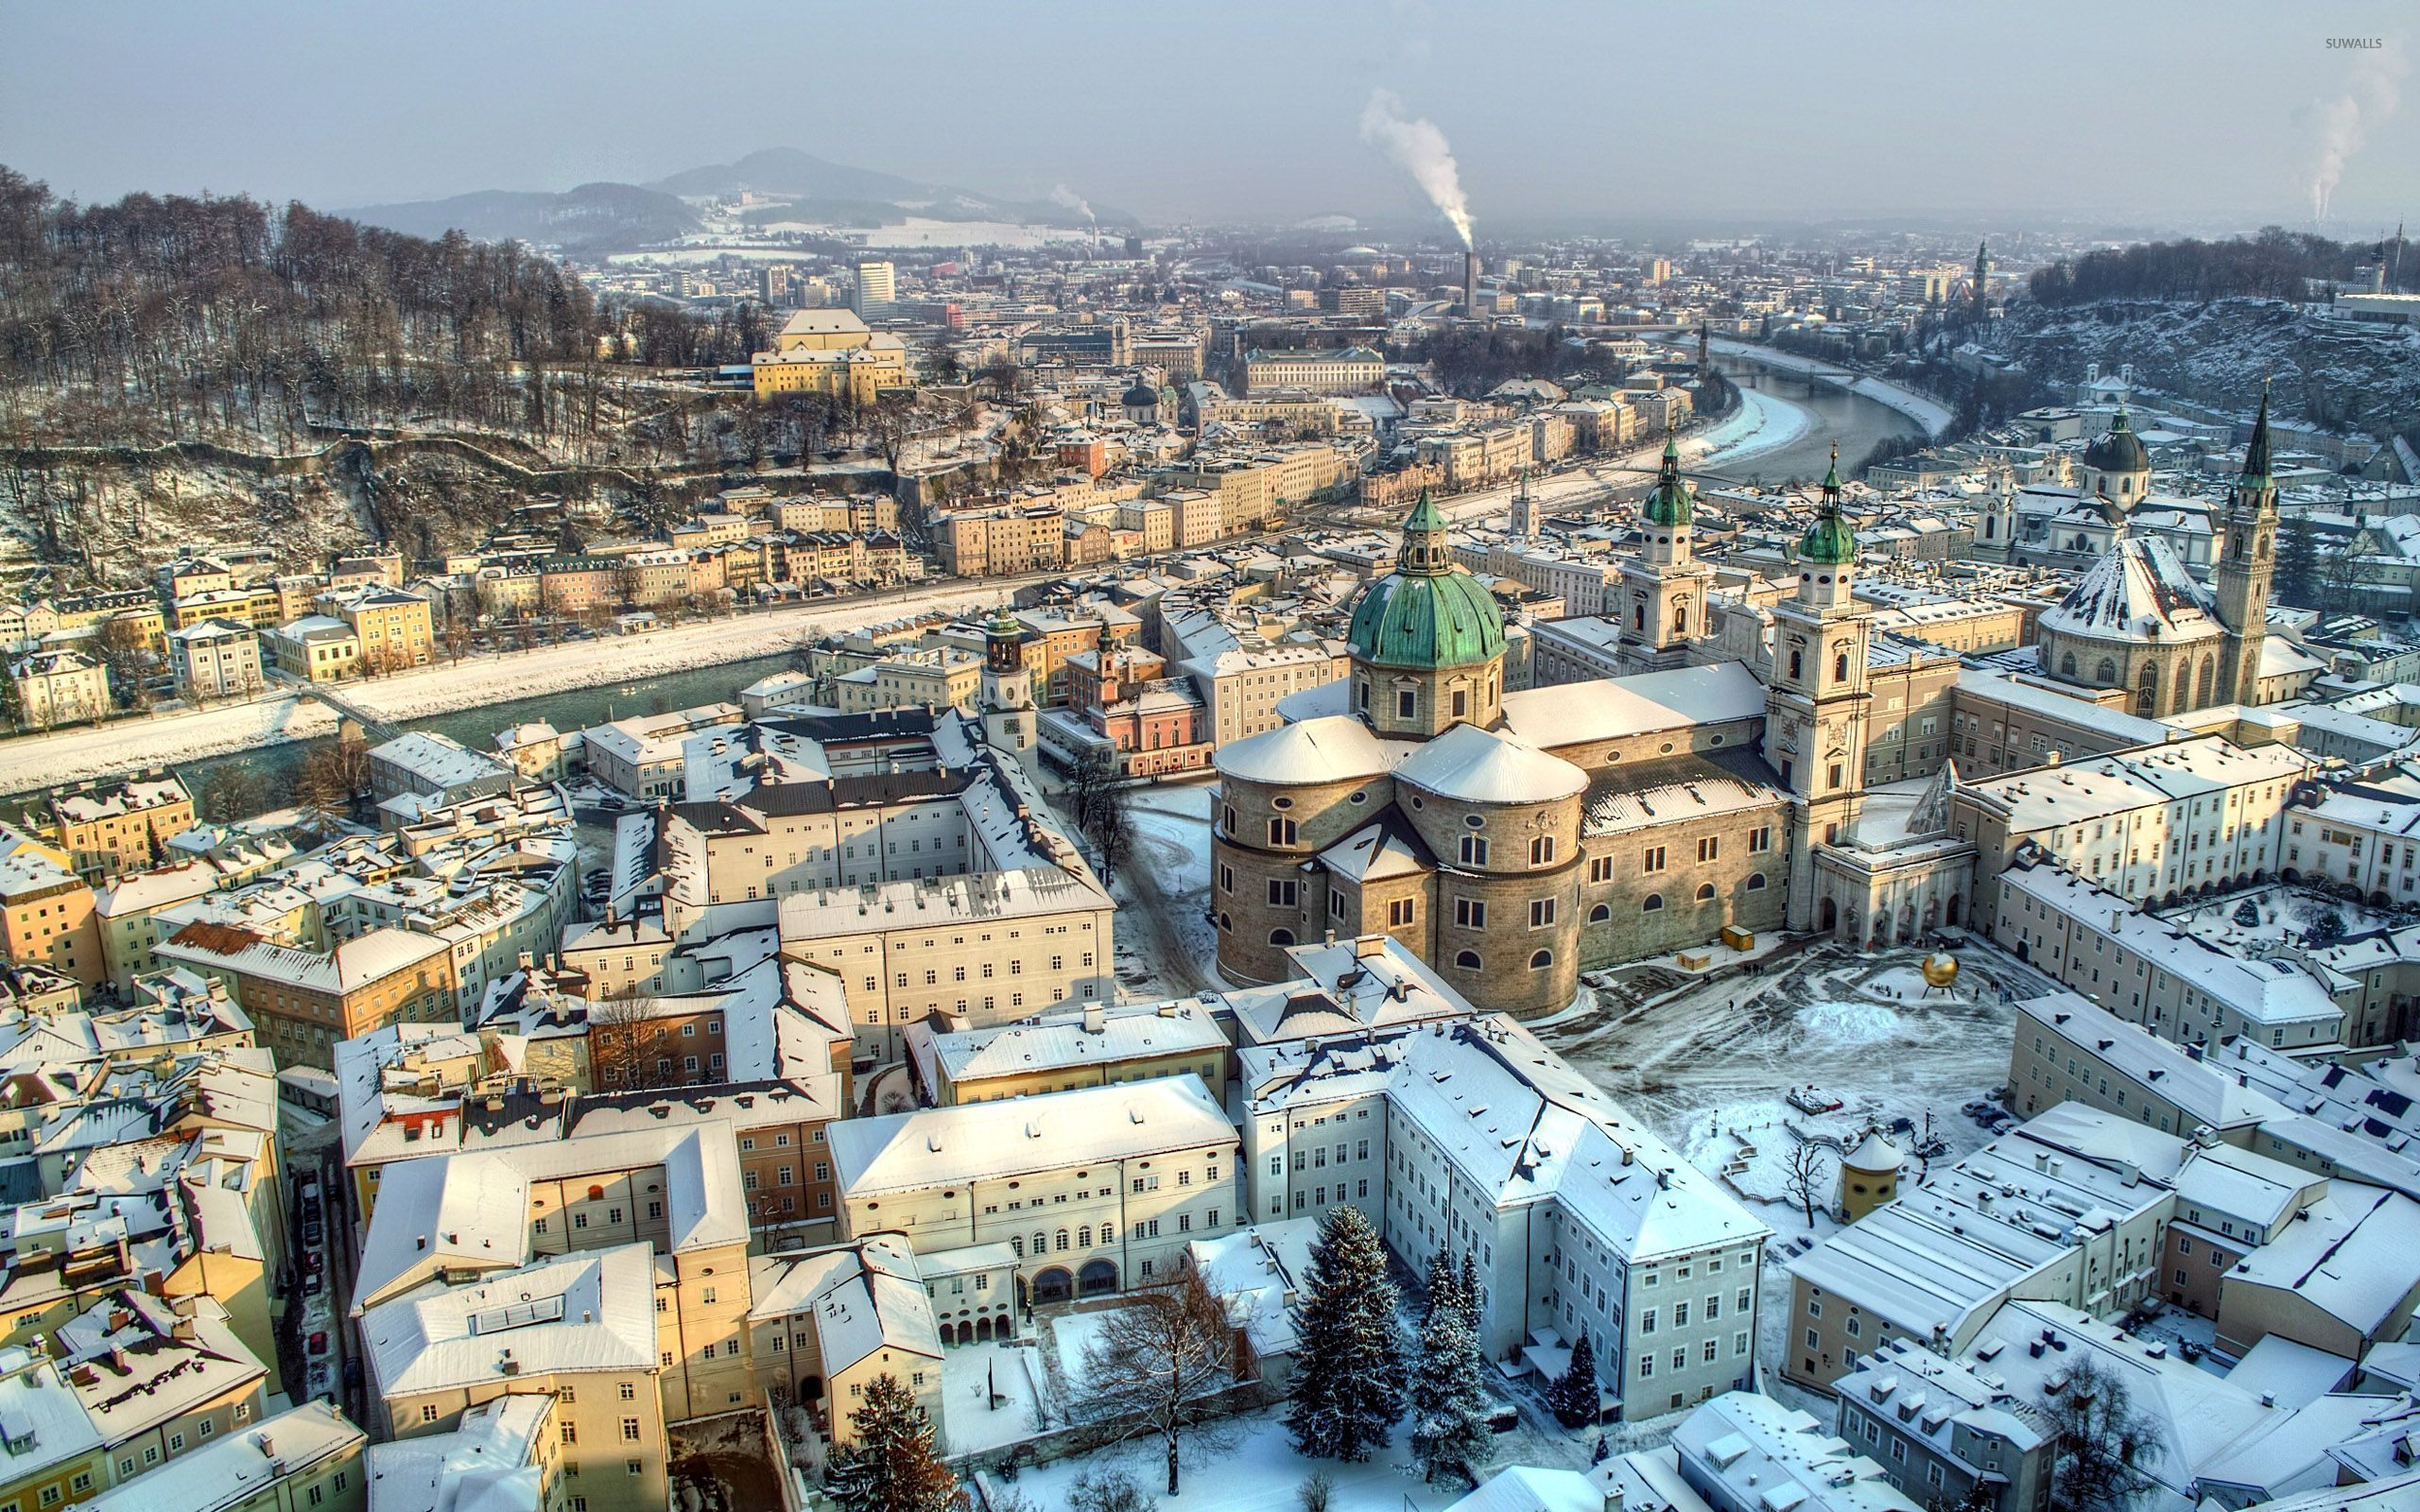 Salzburg Wallpapers and Background Images   stmednet 2560x1600